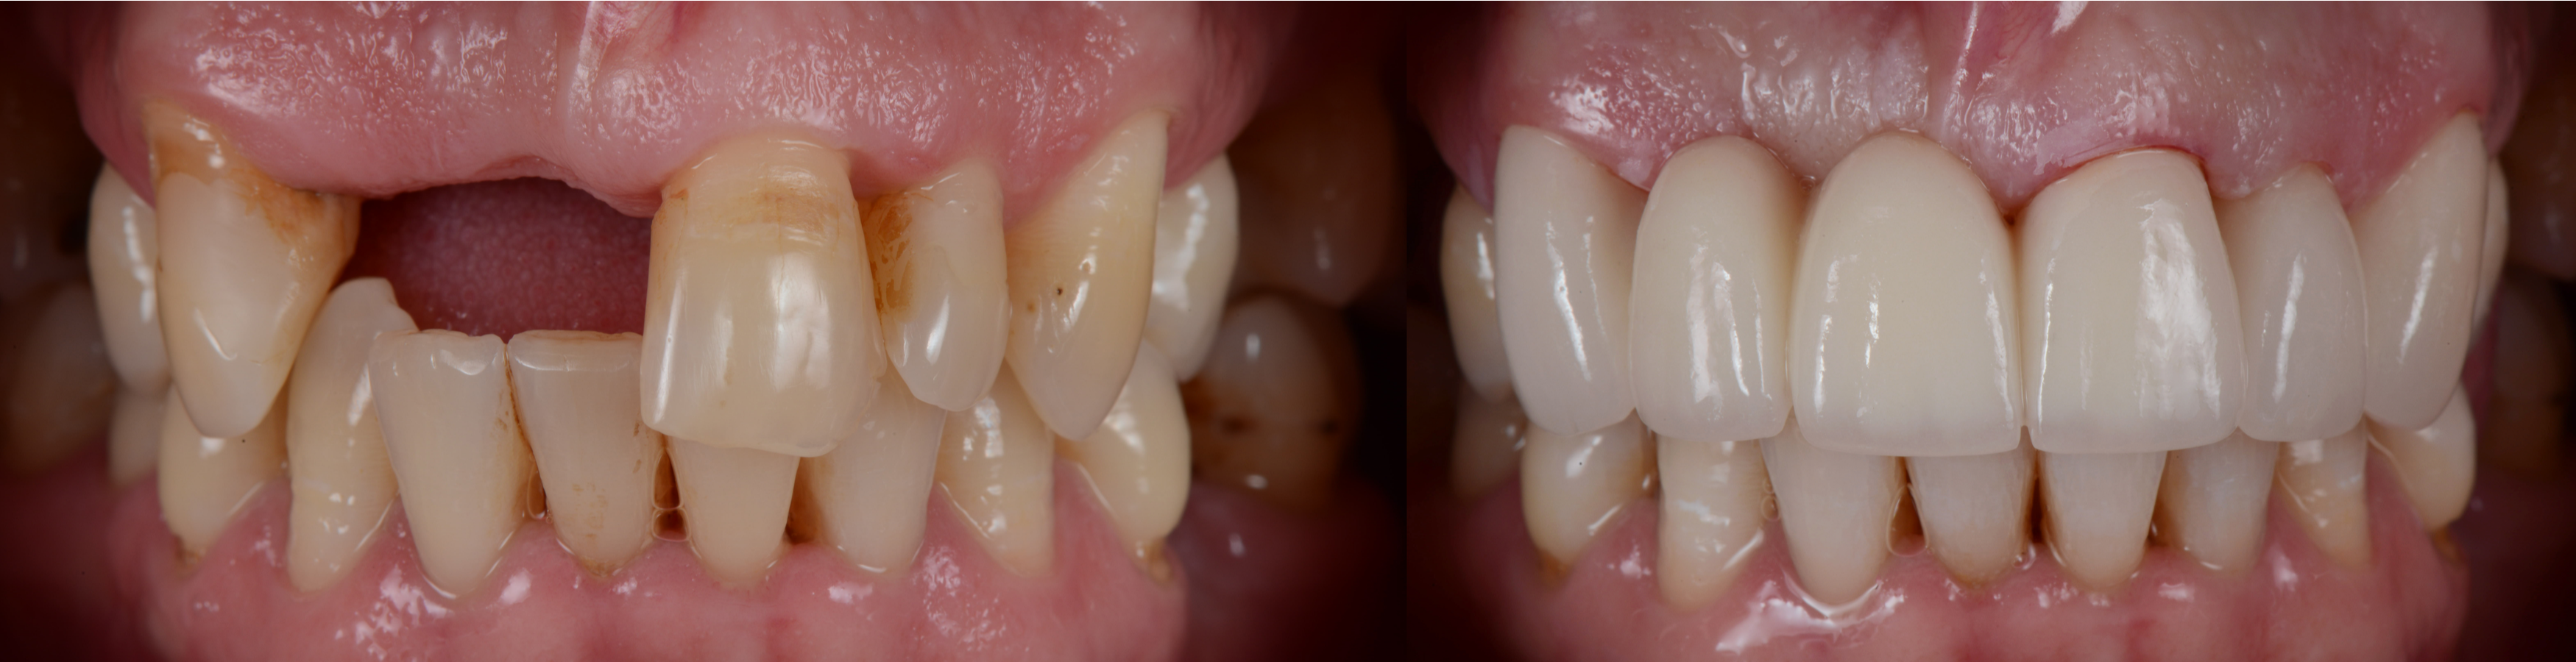 What Is the Process of Getting Dental Bridges?